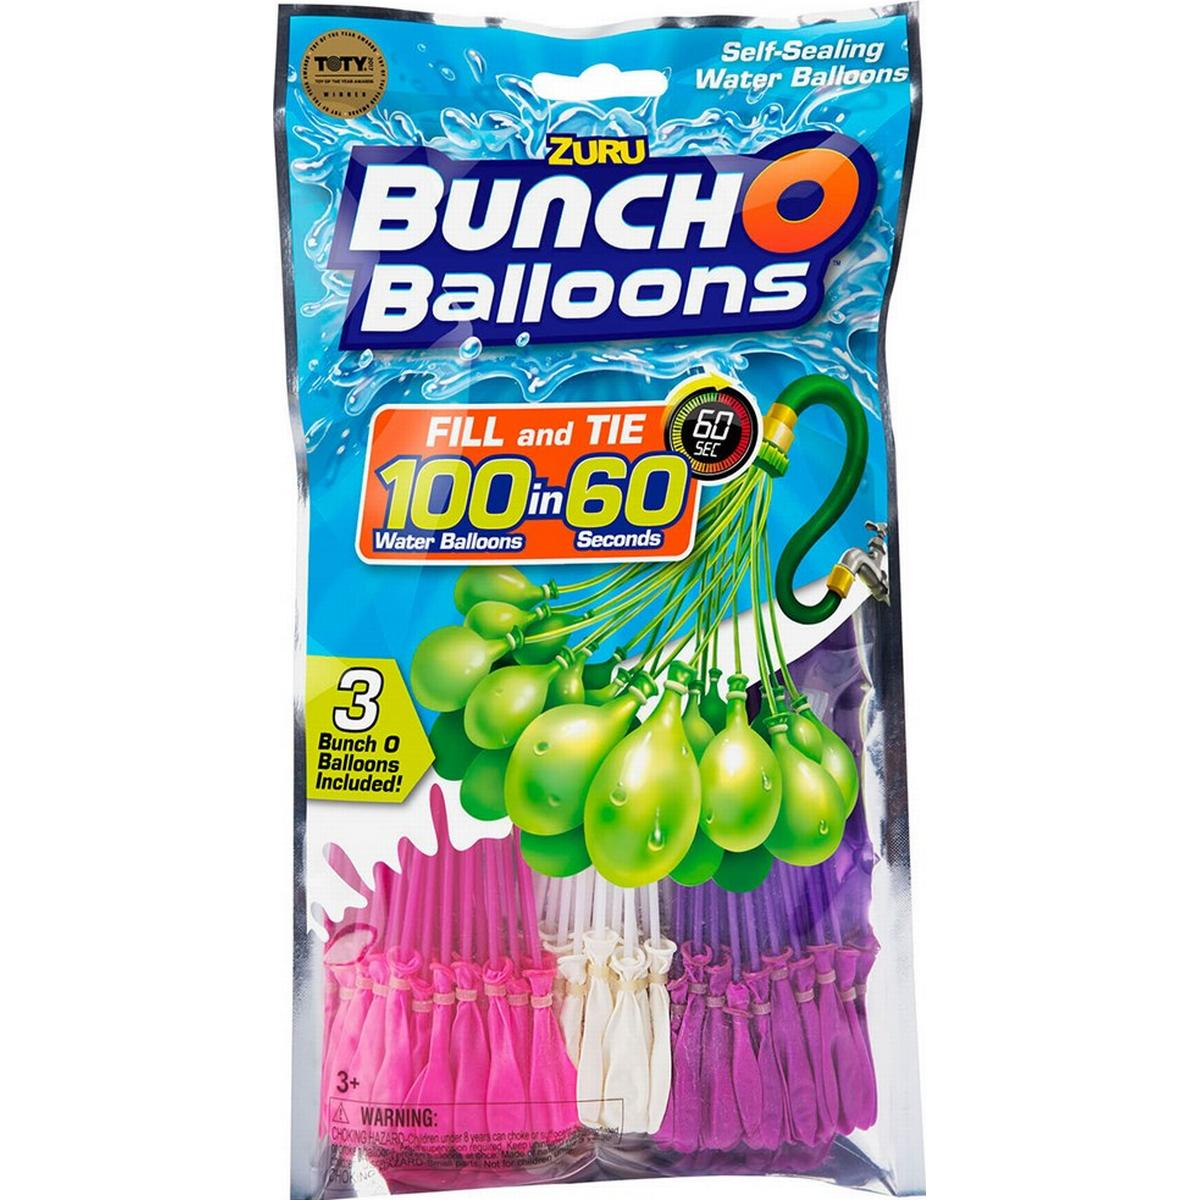 and Red White and Blue 3 Bunches 3 Bunches Minions Bunch O Balloons ZURU Self-Sealing Water Balloons Bundle